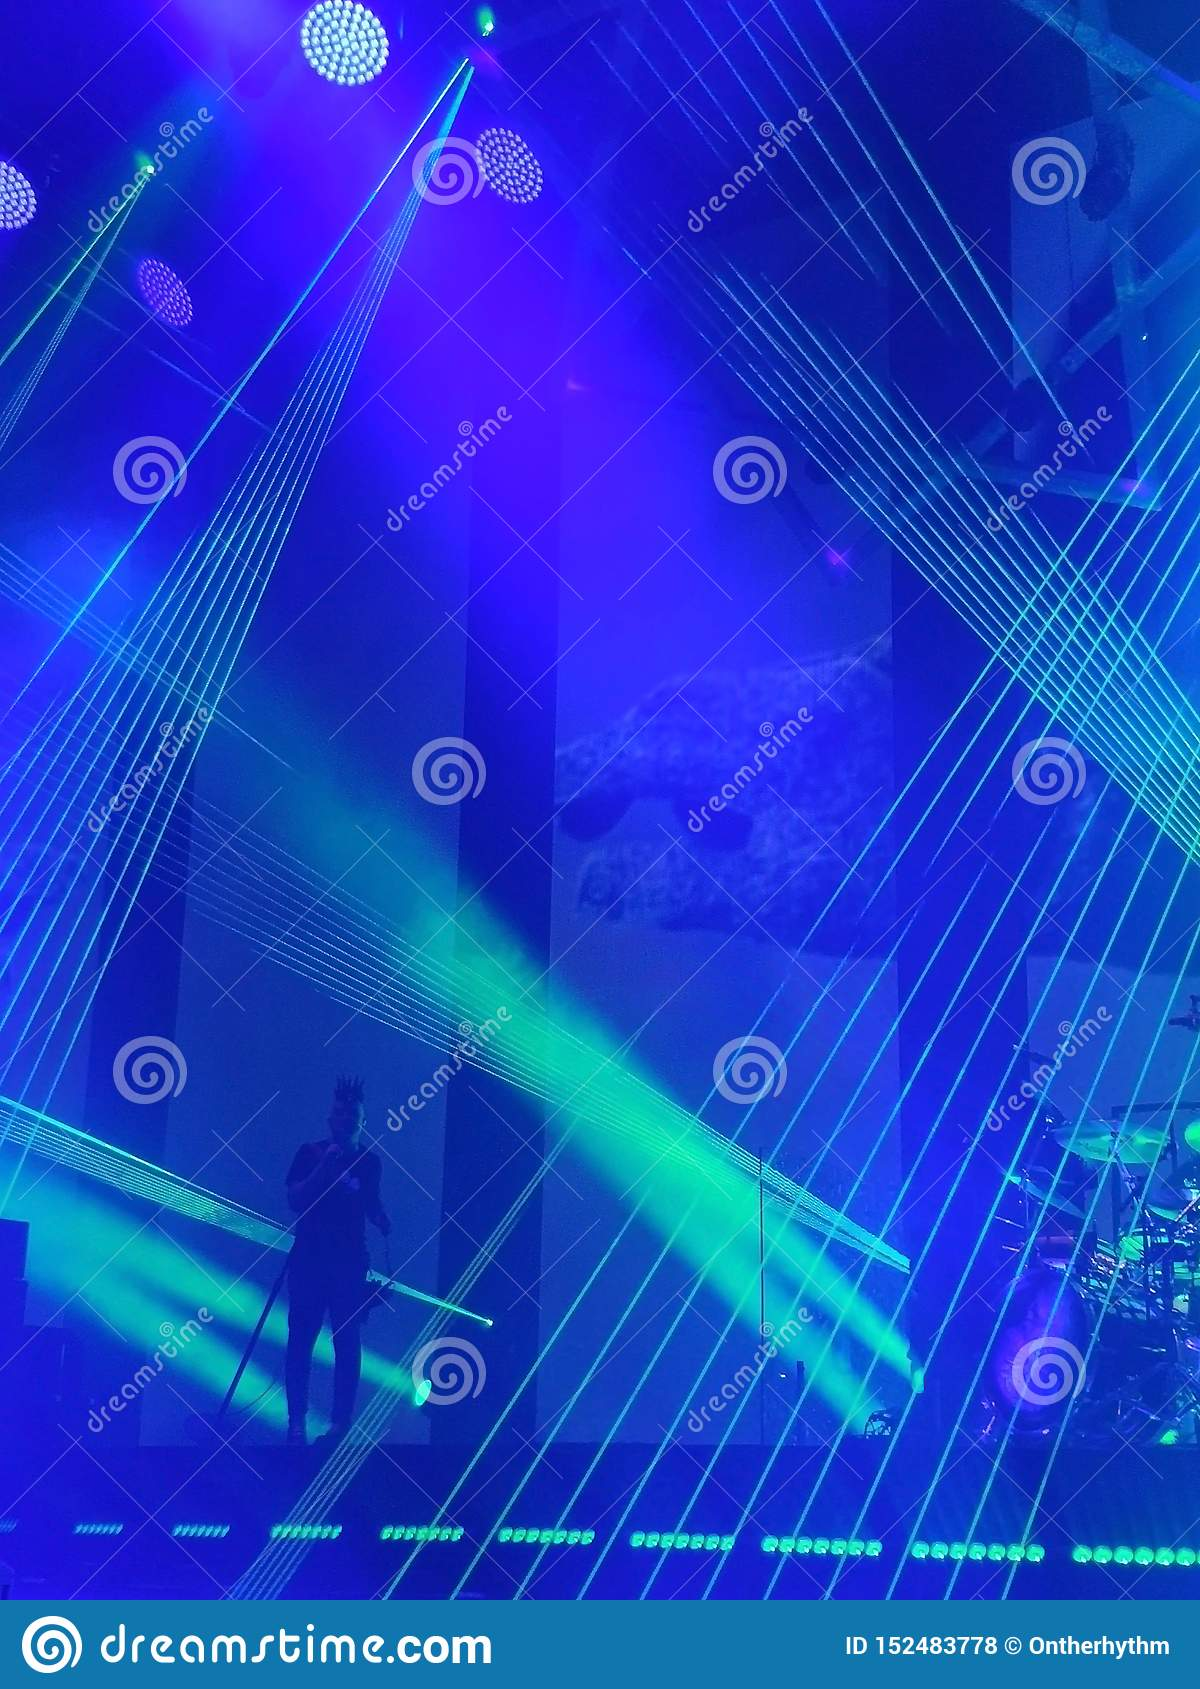 Zurich, Switzerland - June 25, 2019: Famous Band Tool With